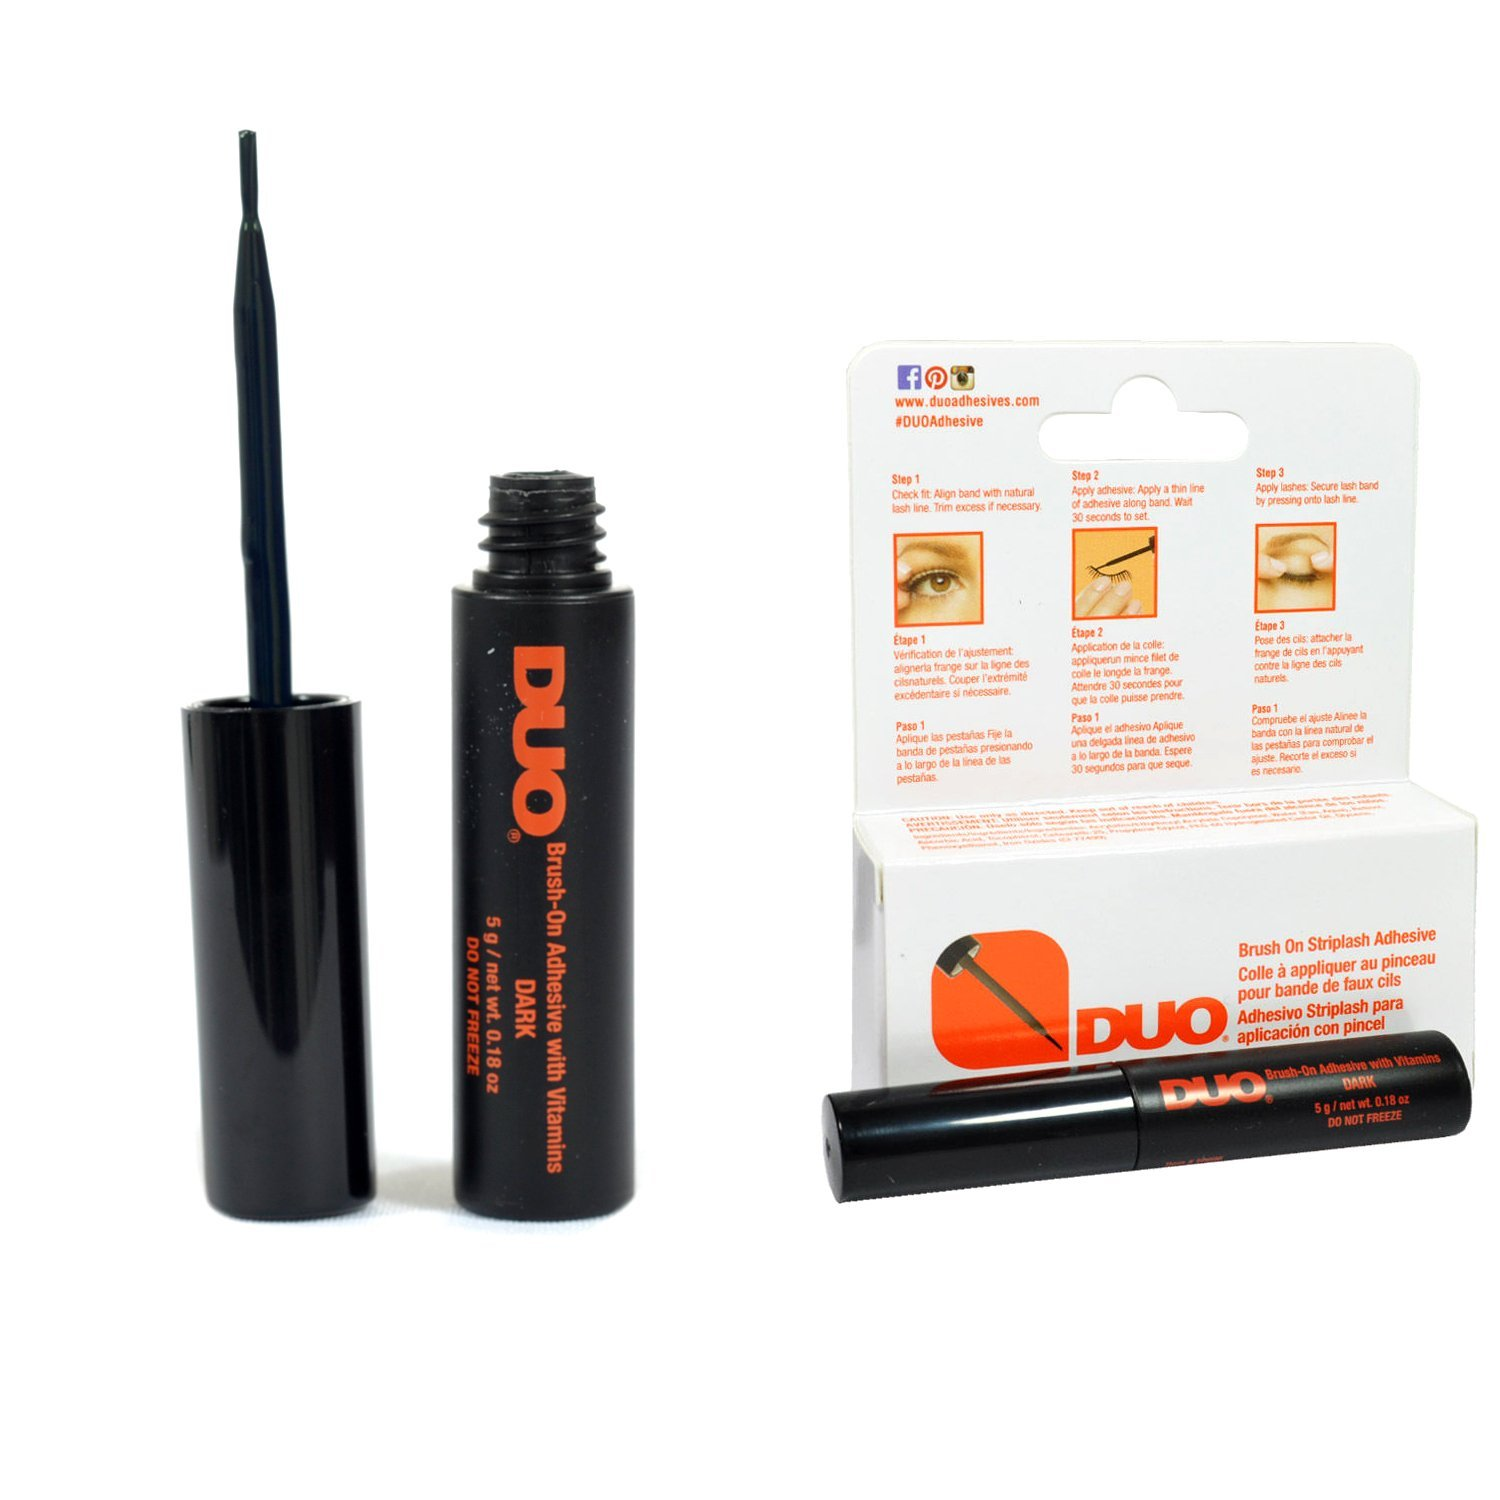 6ce6db55674 Ardell Duo Dark Brush on Adhesive by Ardell | Favful